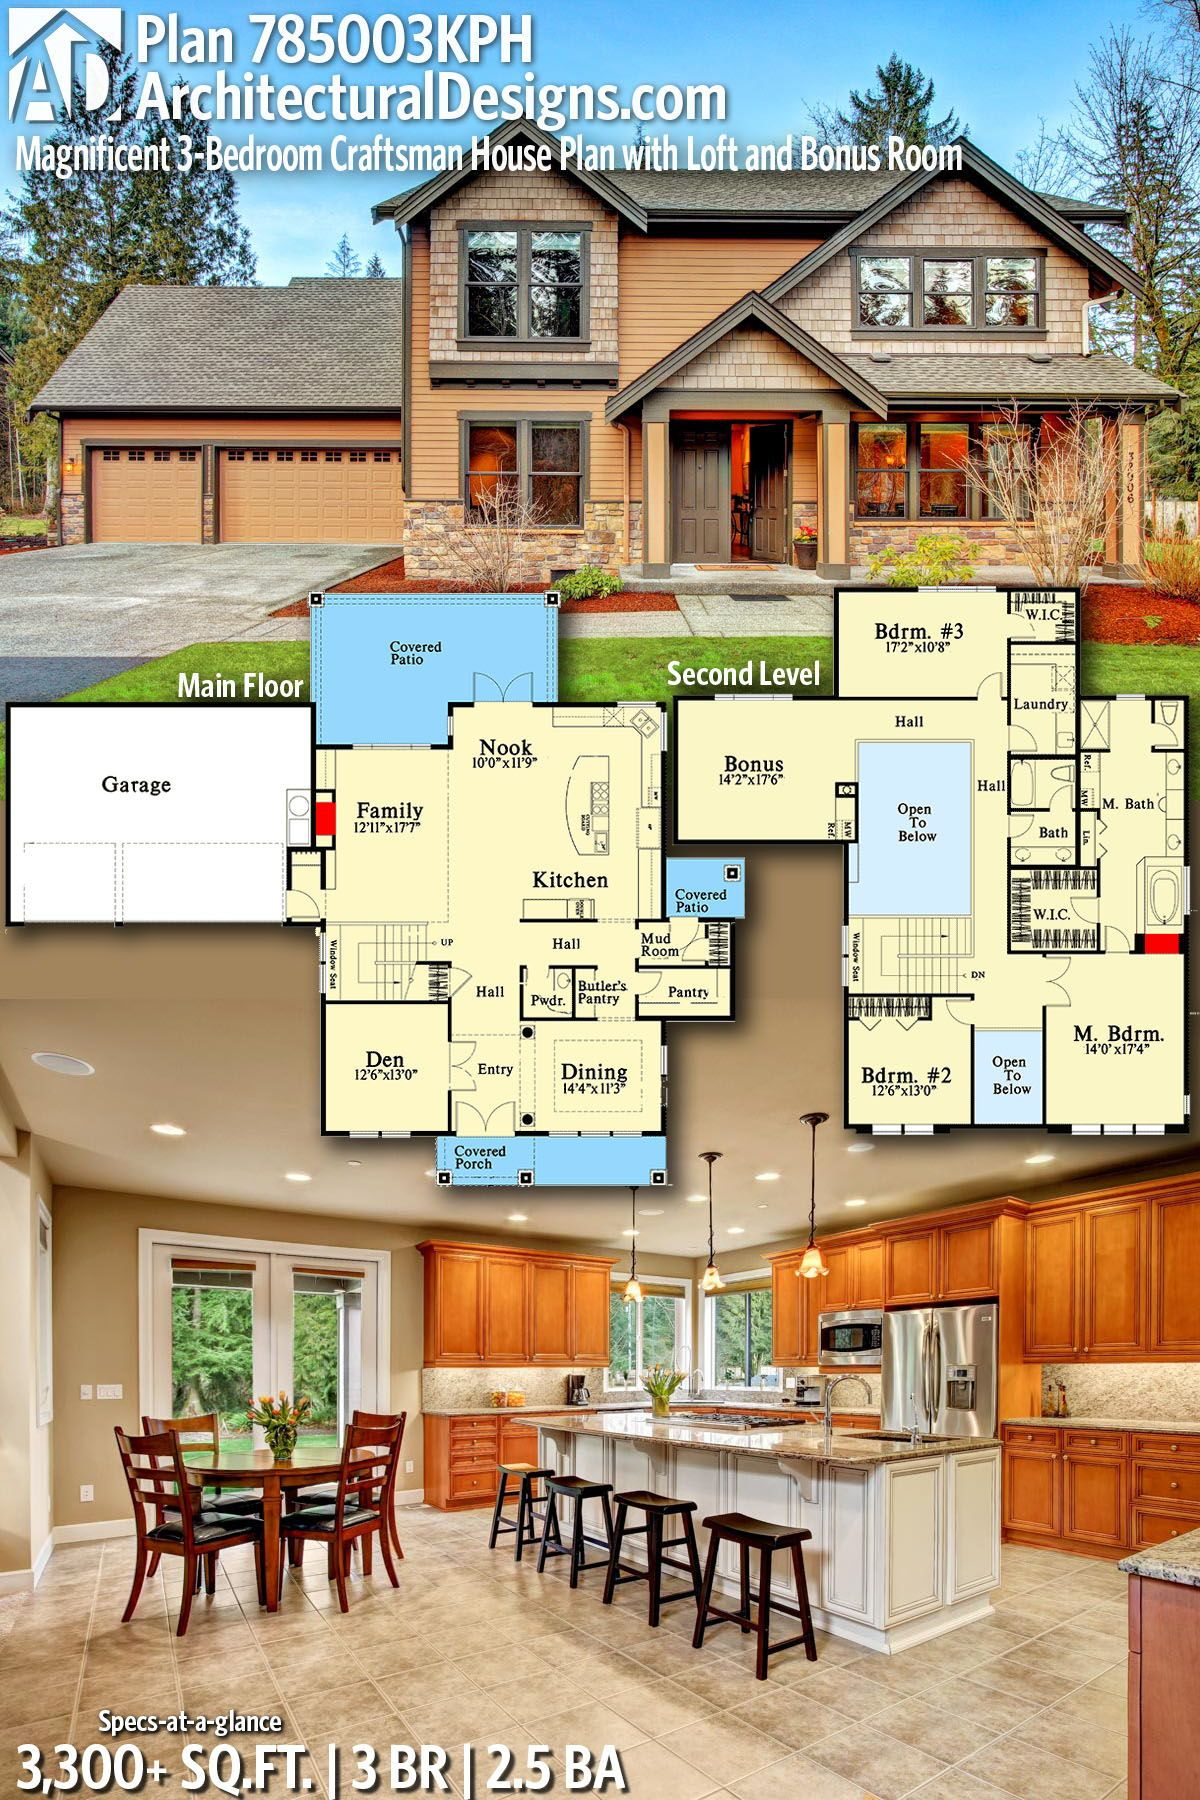 Architectural Designs Home Plan 785003KPH Gives You 3 Bedrooms, 2.5 Baths  And 3,300+ Sq